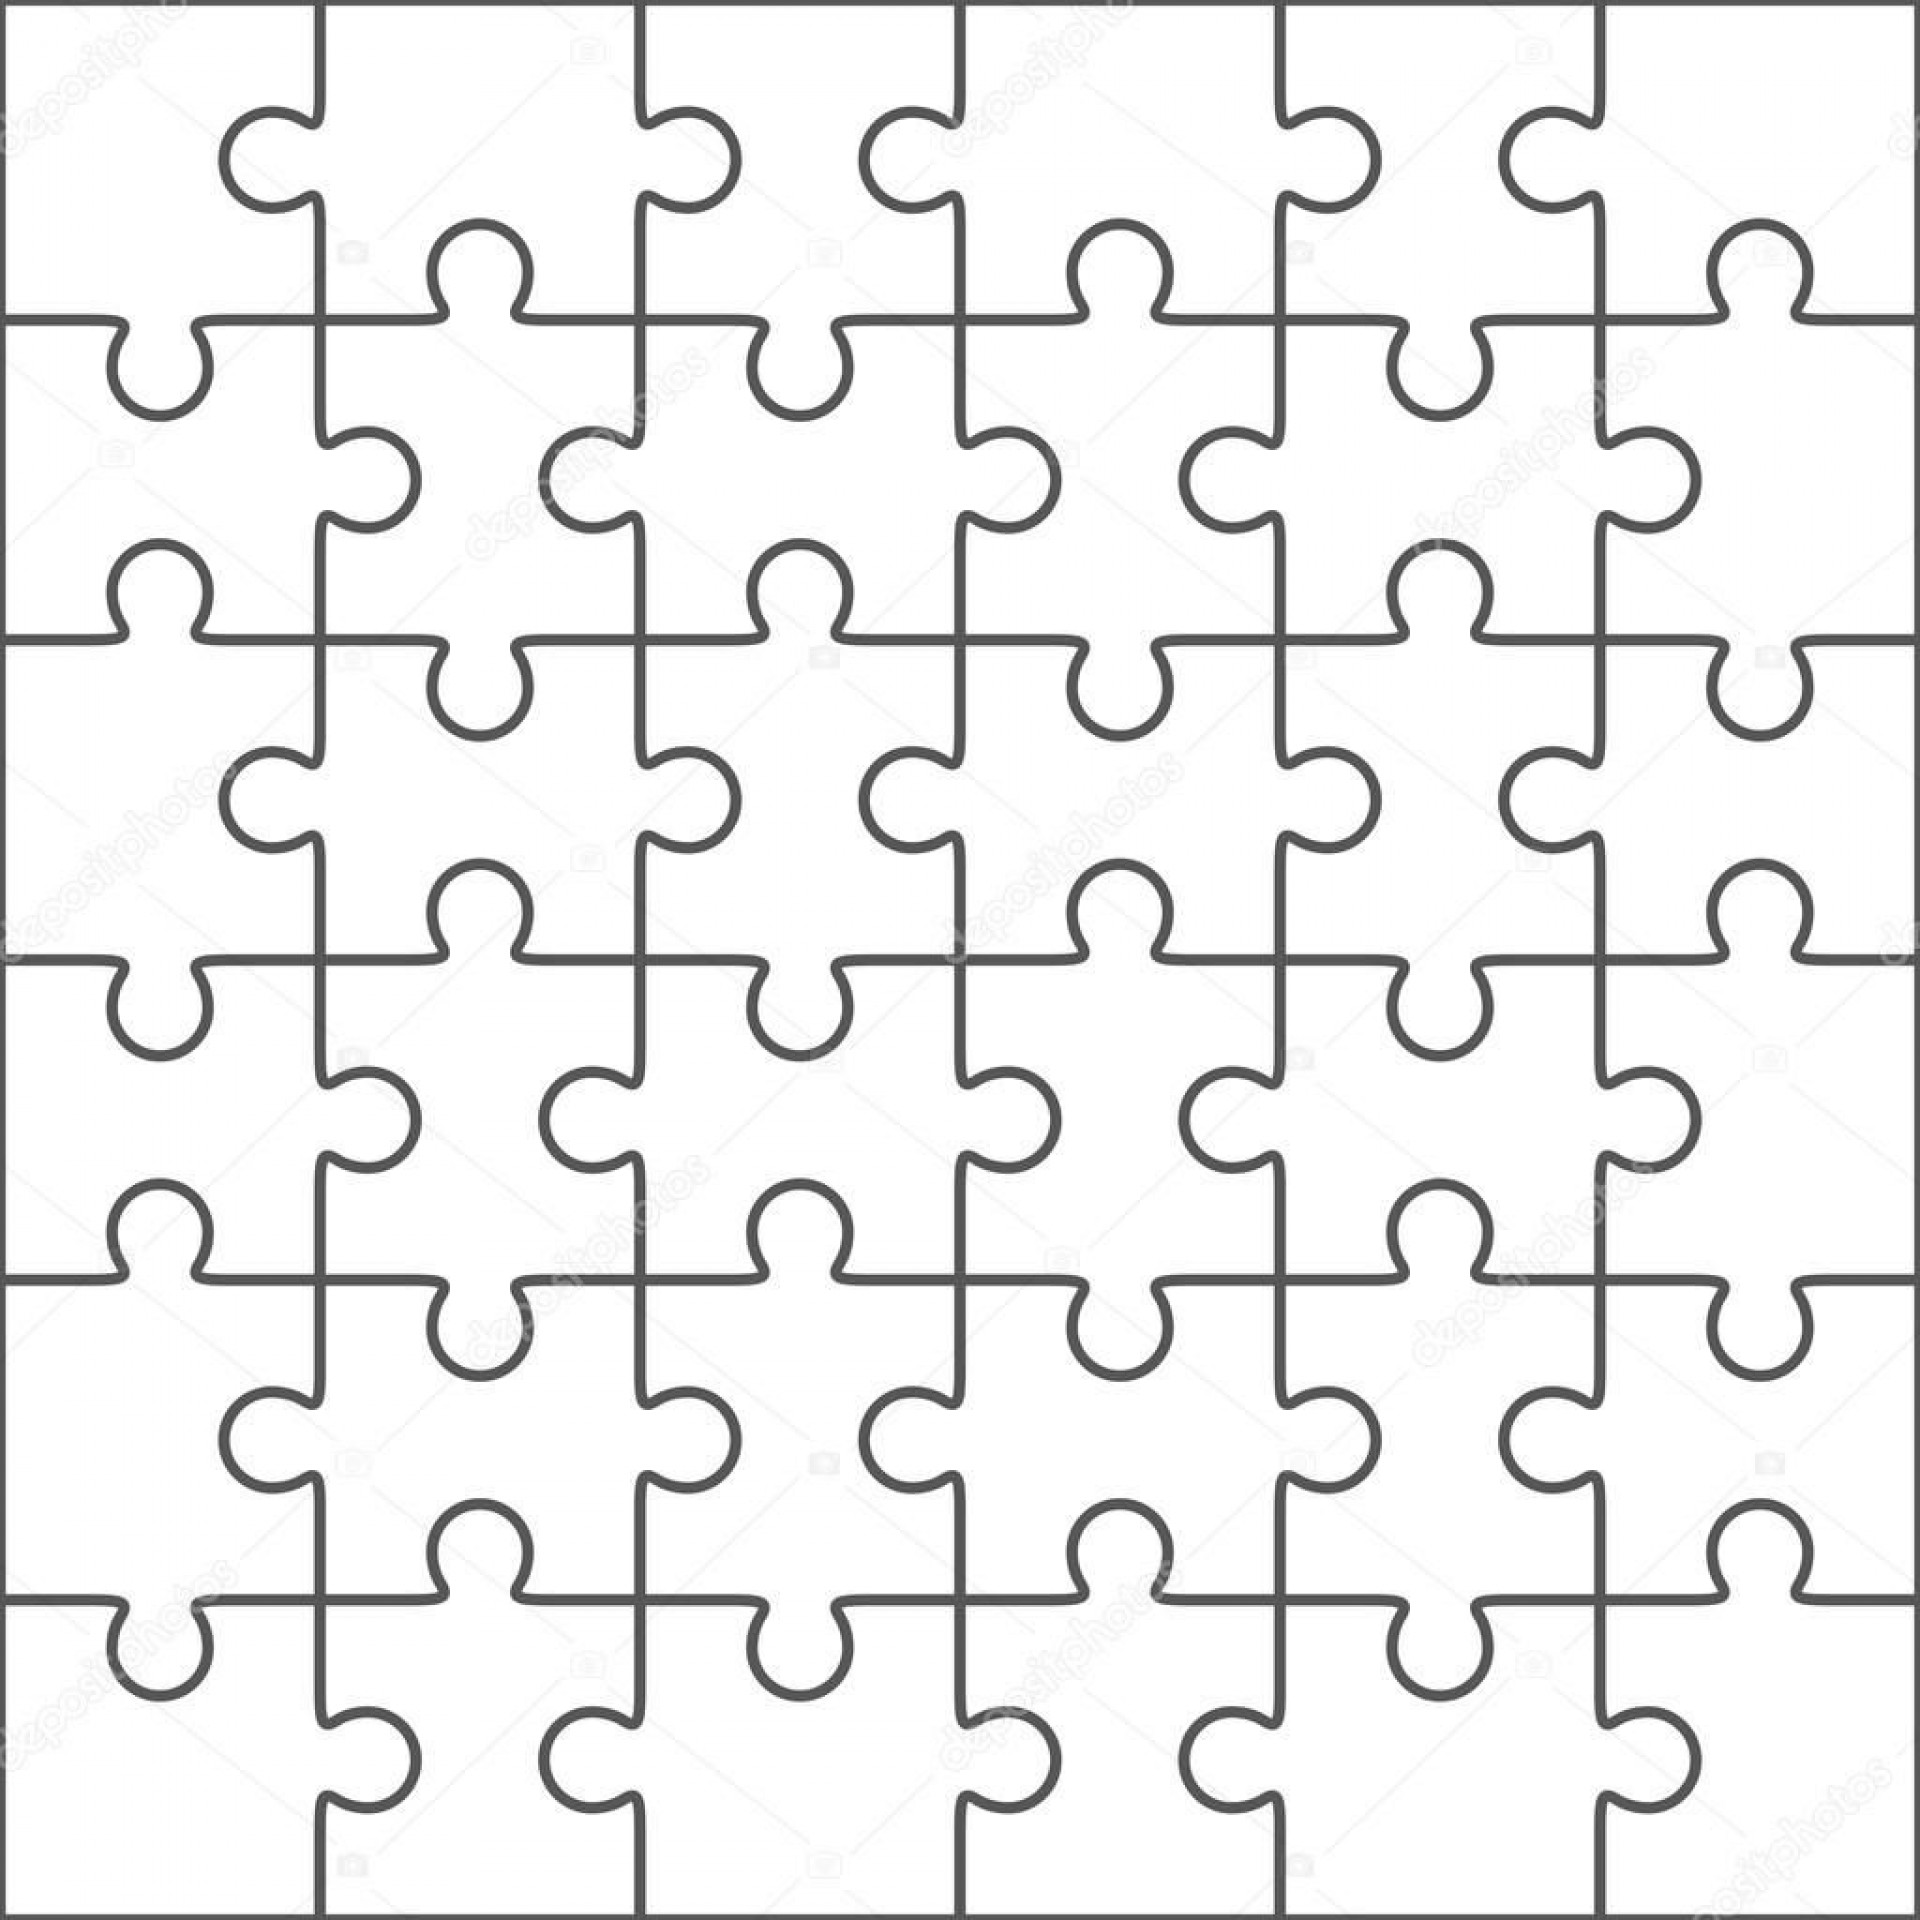 006 Surprising Jig Saw Puzzle Template Highest Clarity  Printable Blank Jigsaw Vector Free Png1920